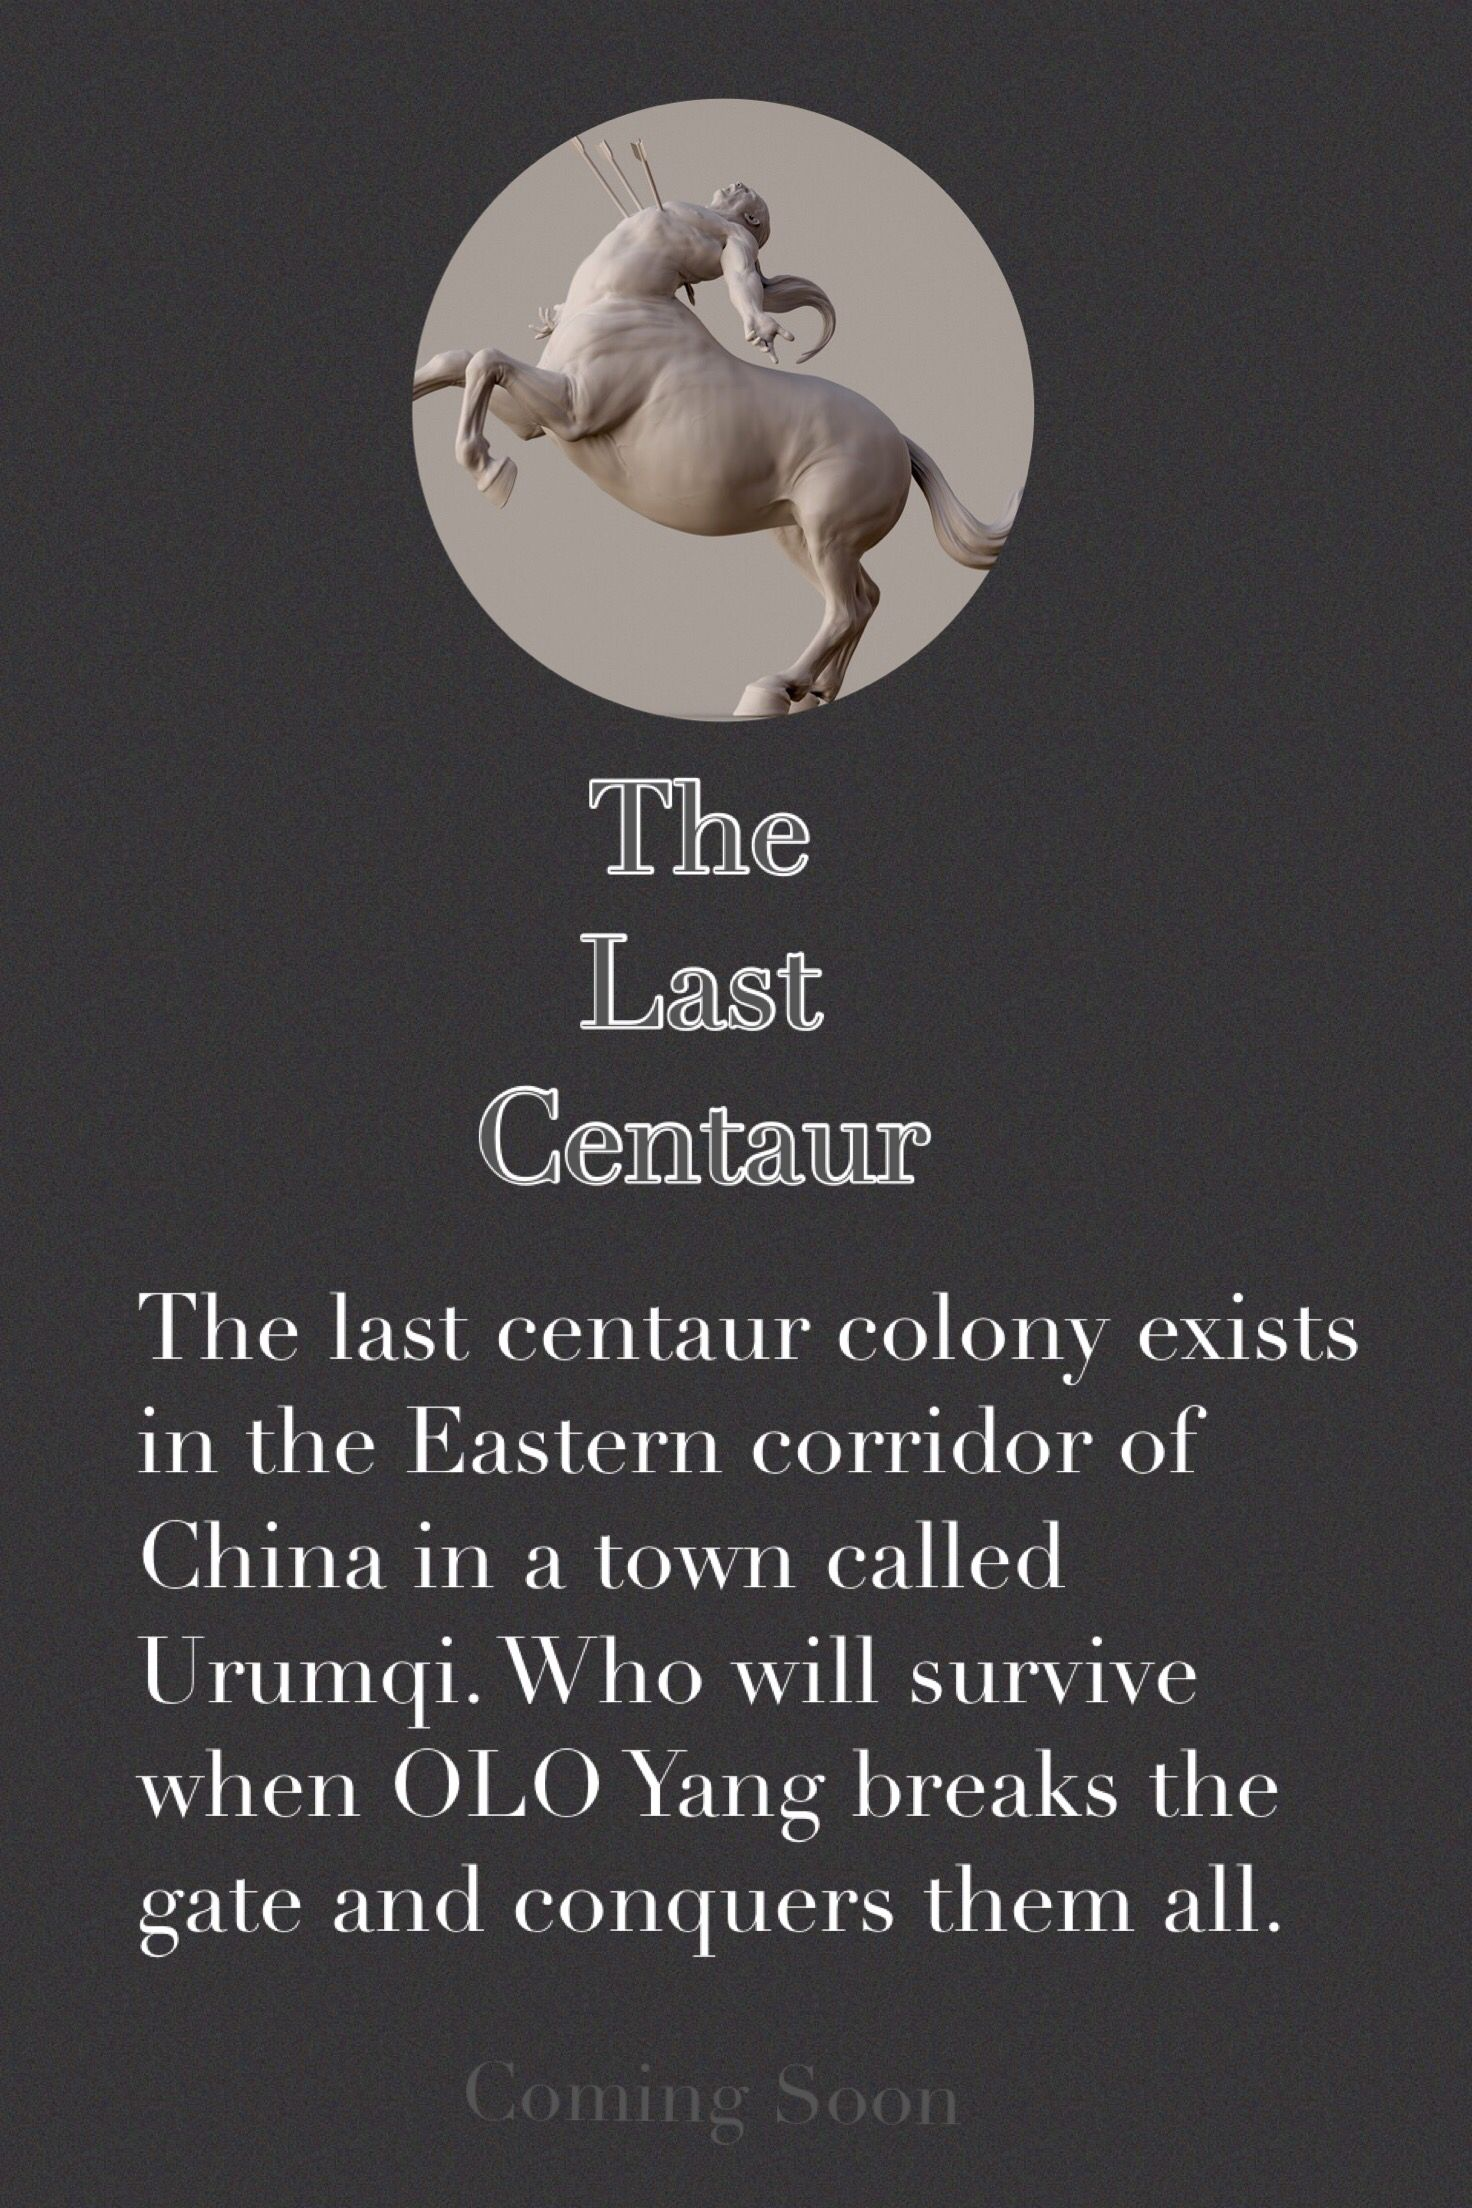 Reading of the e-book about the magic of centaurs in Urumqi at www.bulliesaway.com